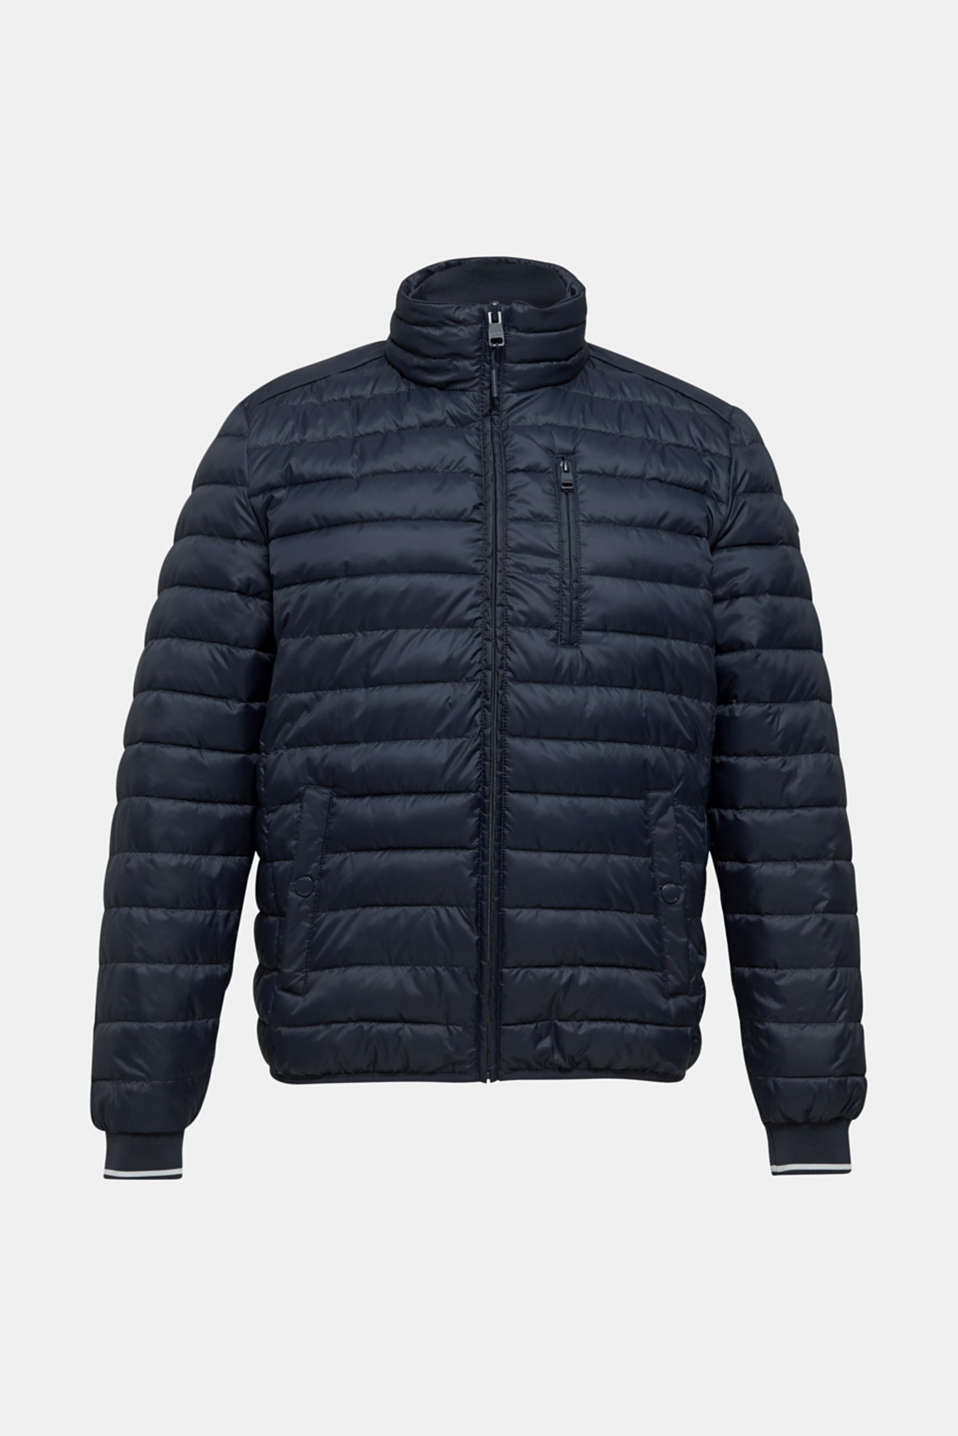 Jackets outdoor woven, DARK BLUE, detail image number 6